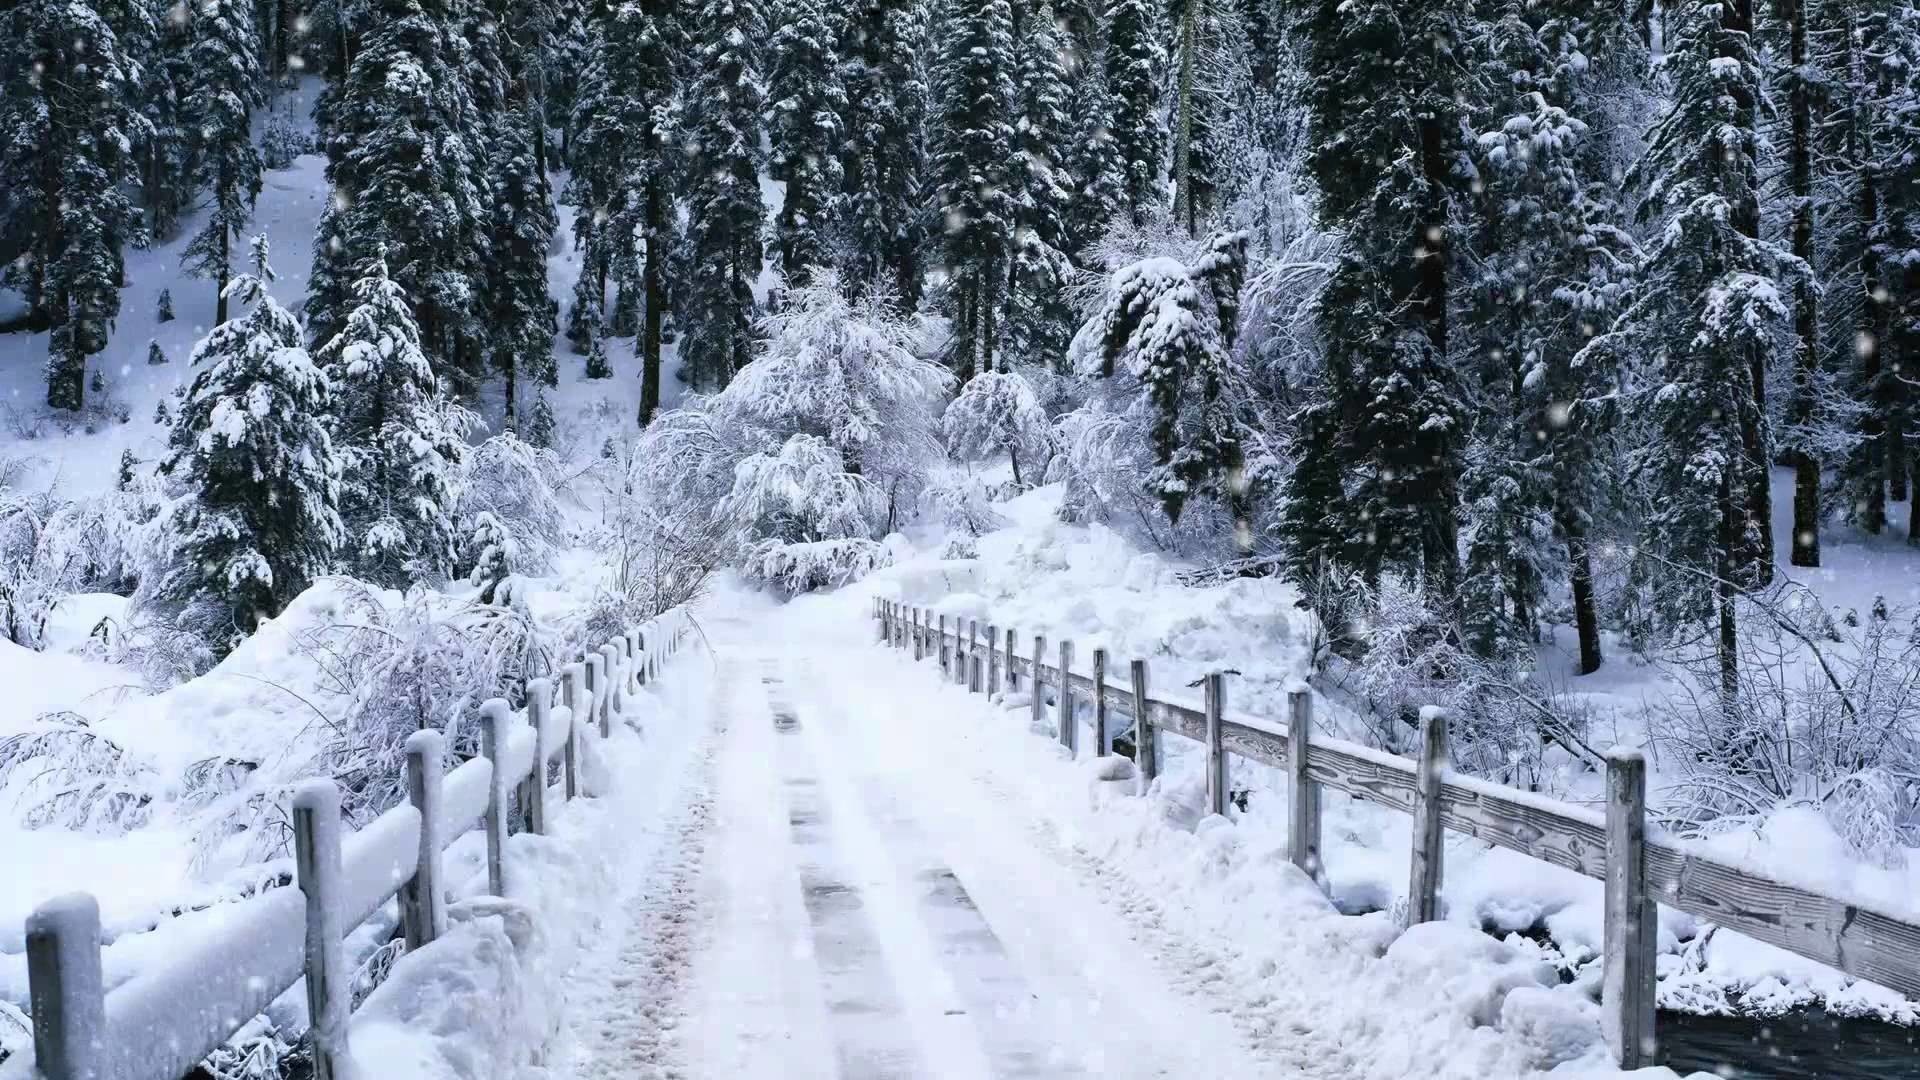 Live Snow Falling Wallpaper 54 Images